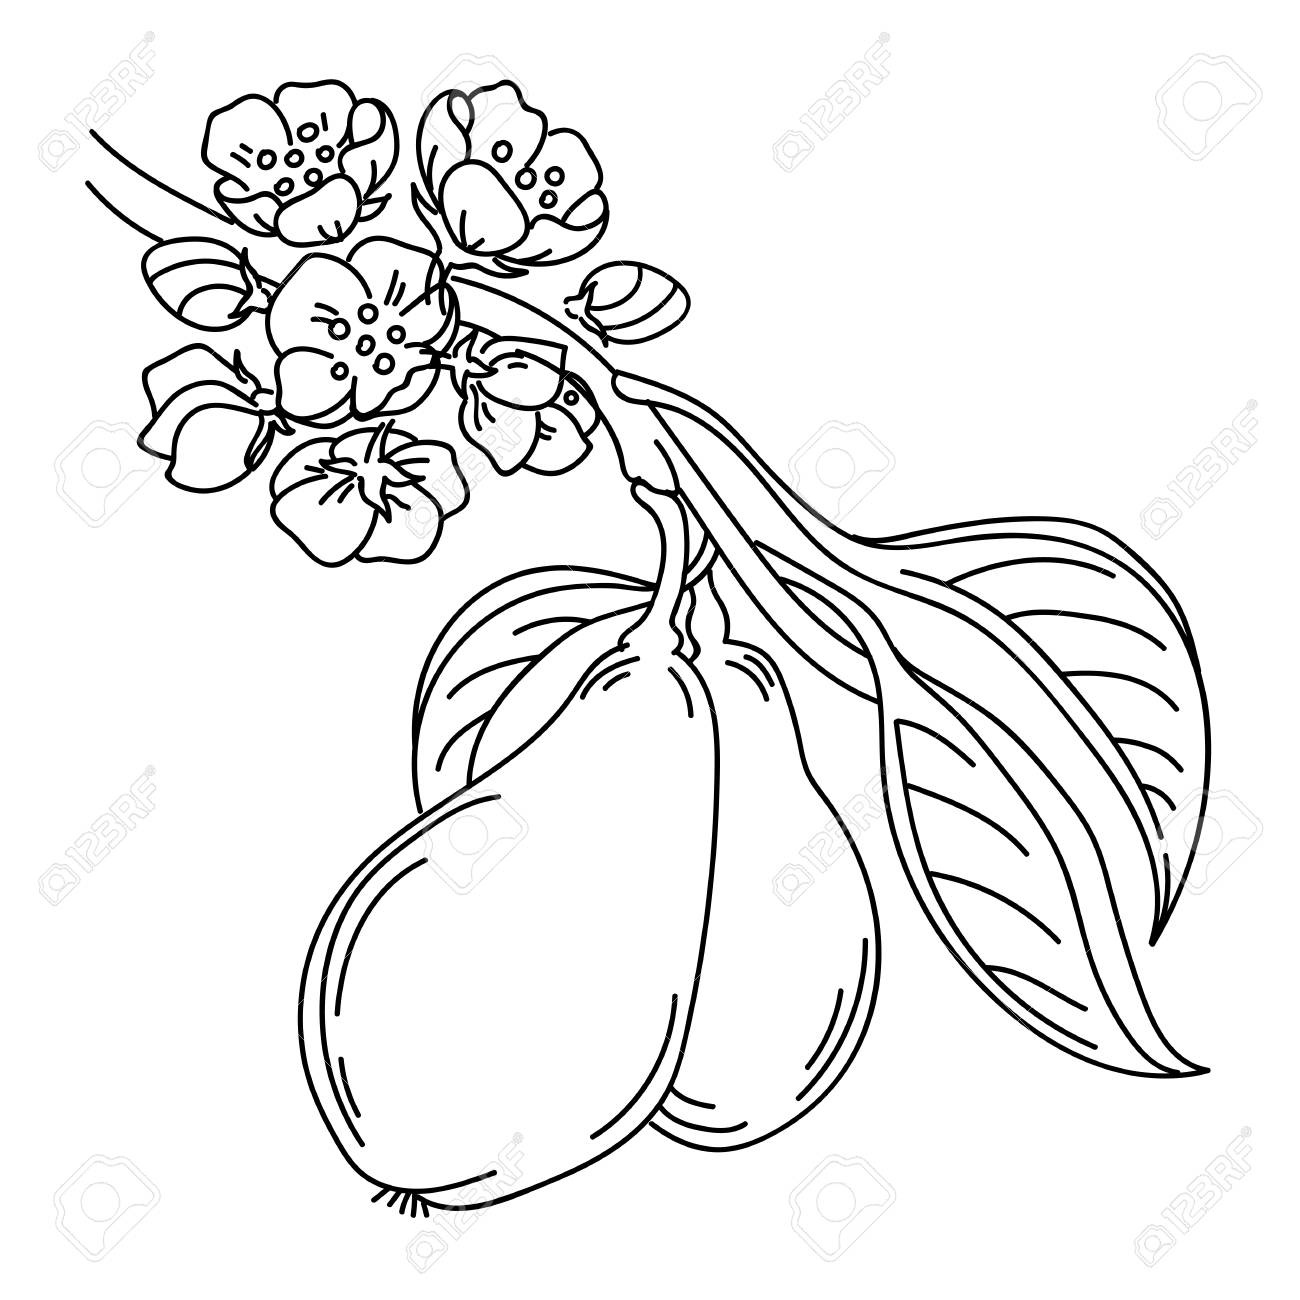 Illustration of a pear tree twig in sketch style with flowers bloom and ripe fruits